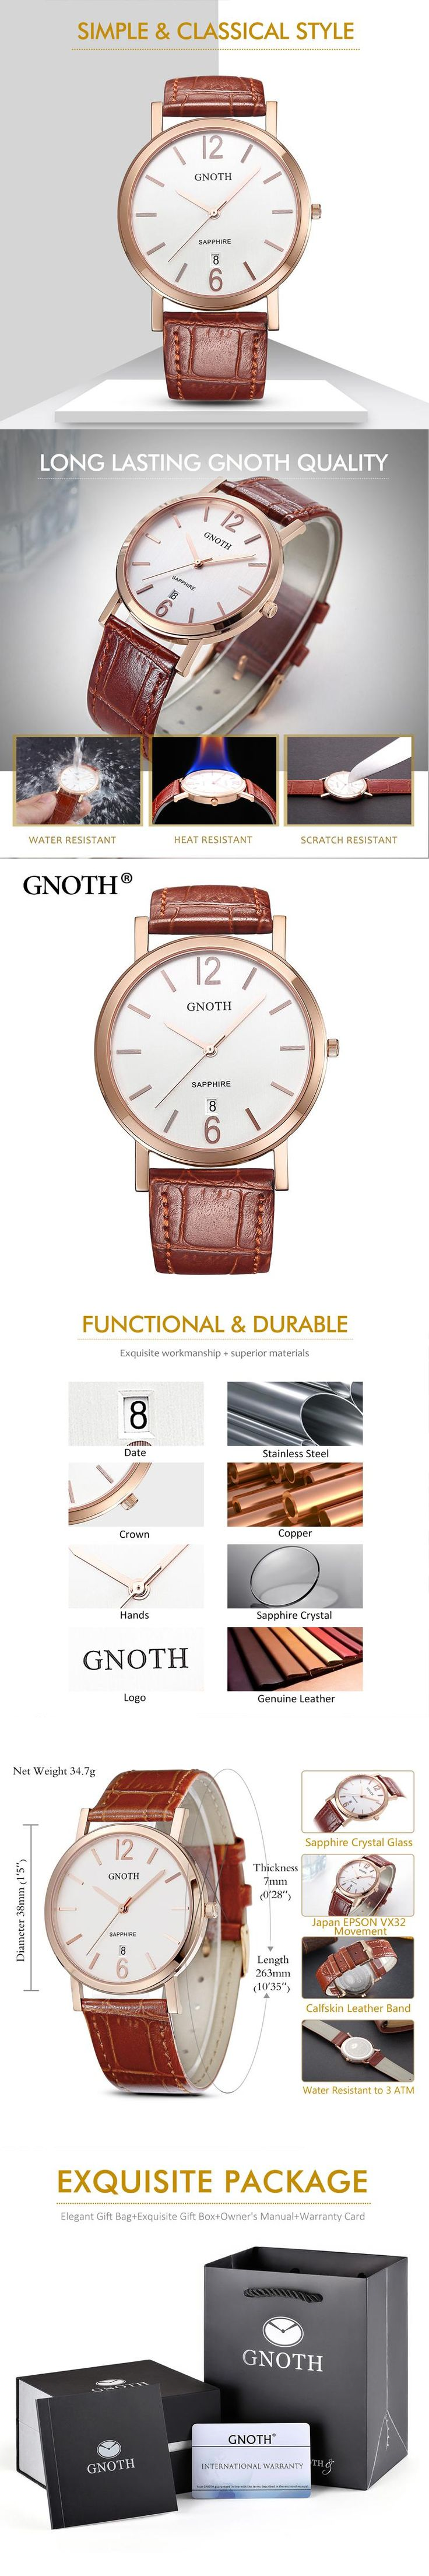 New GNOTH Top Brand Quartz Women Watch Analog Display Sapphire High Quality Leather Strap Female Wristwatches Box Gift Hot Sale